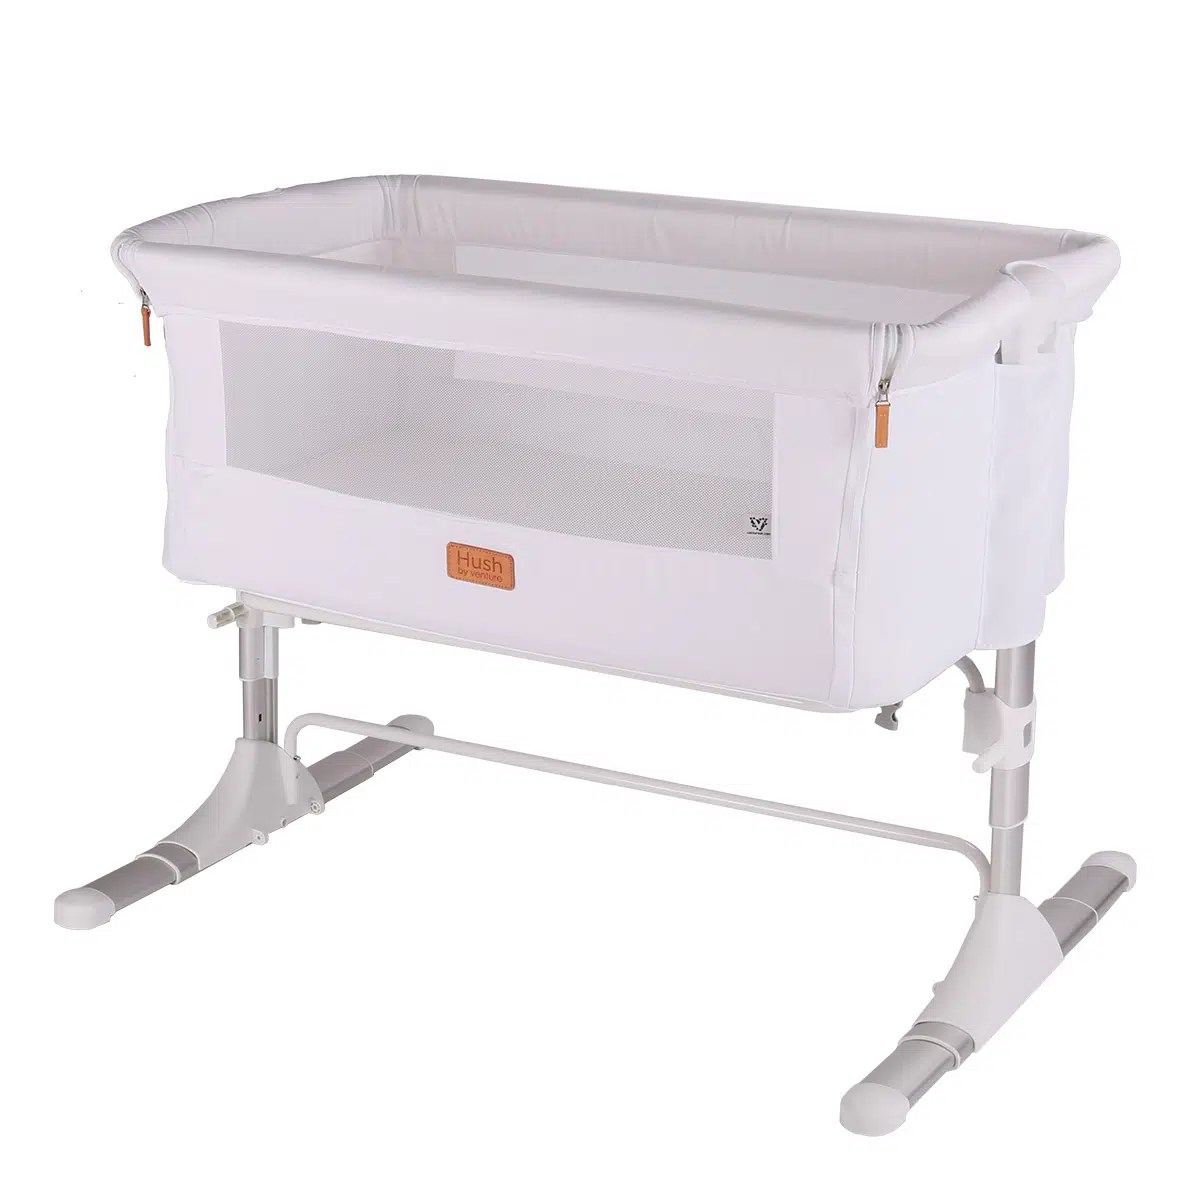 Baby Cradle Dimensions Hush Bedside Baby Crib Co Sleeper White